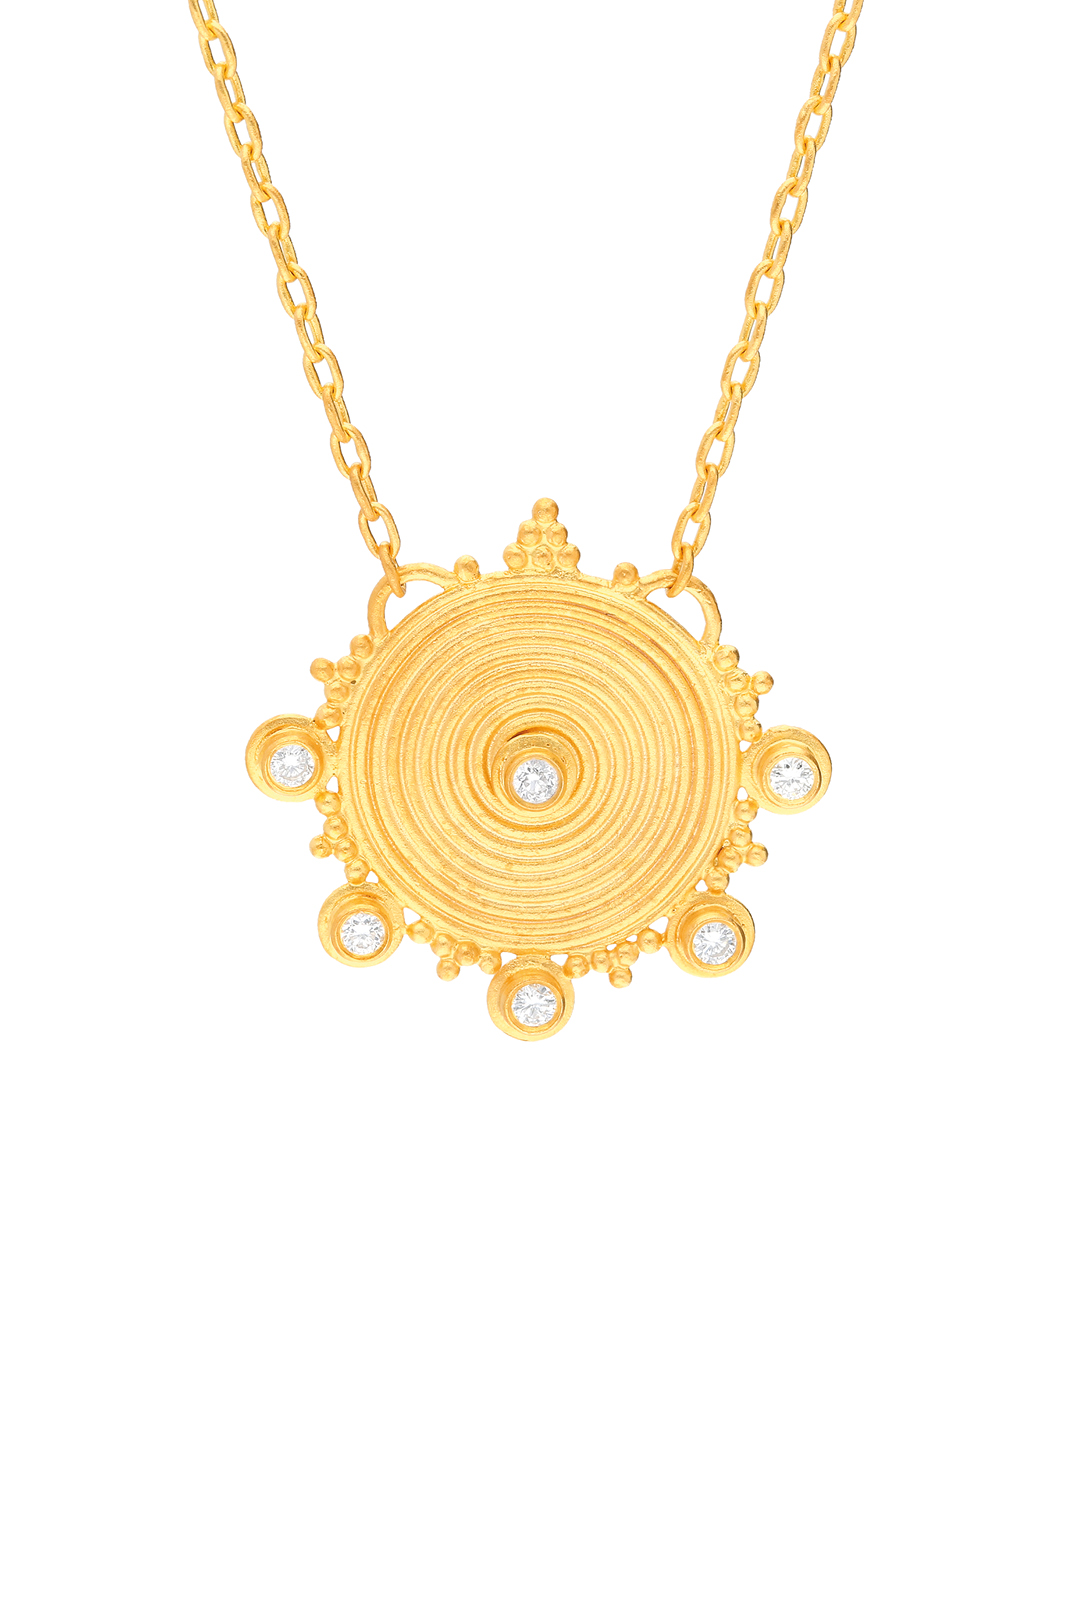 ANCIENT SPIRAL SUN, DIAMOND AND MINI BALLS NECKLACE